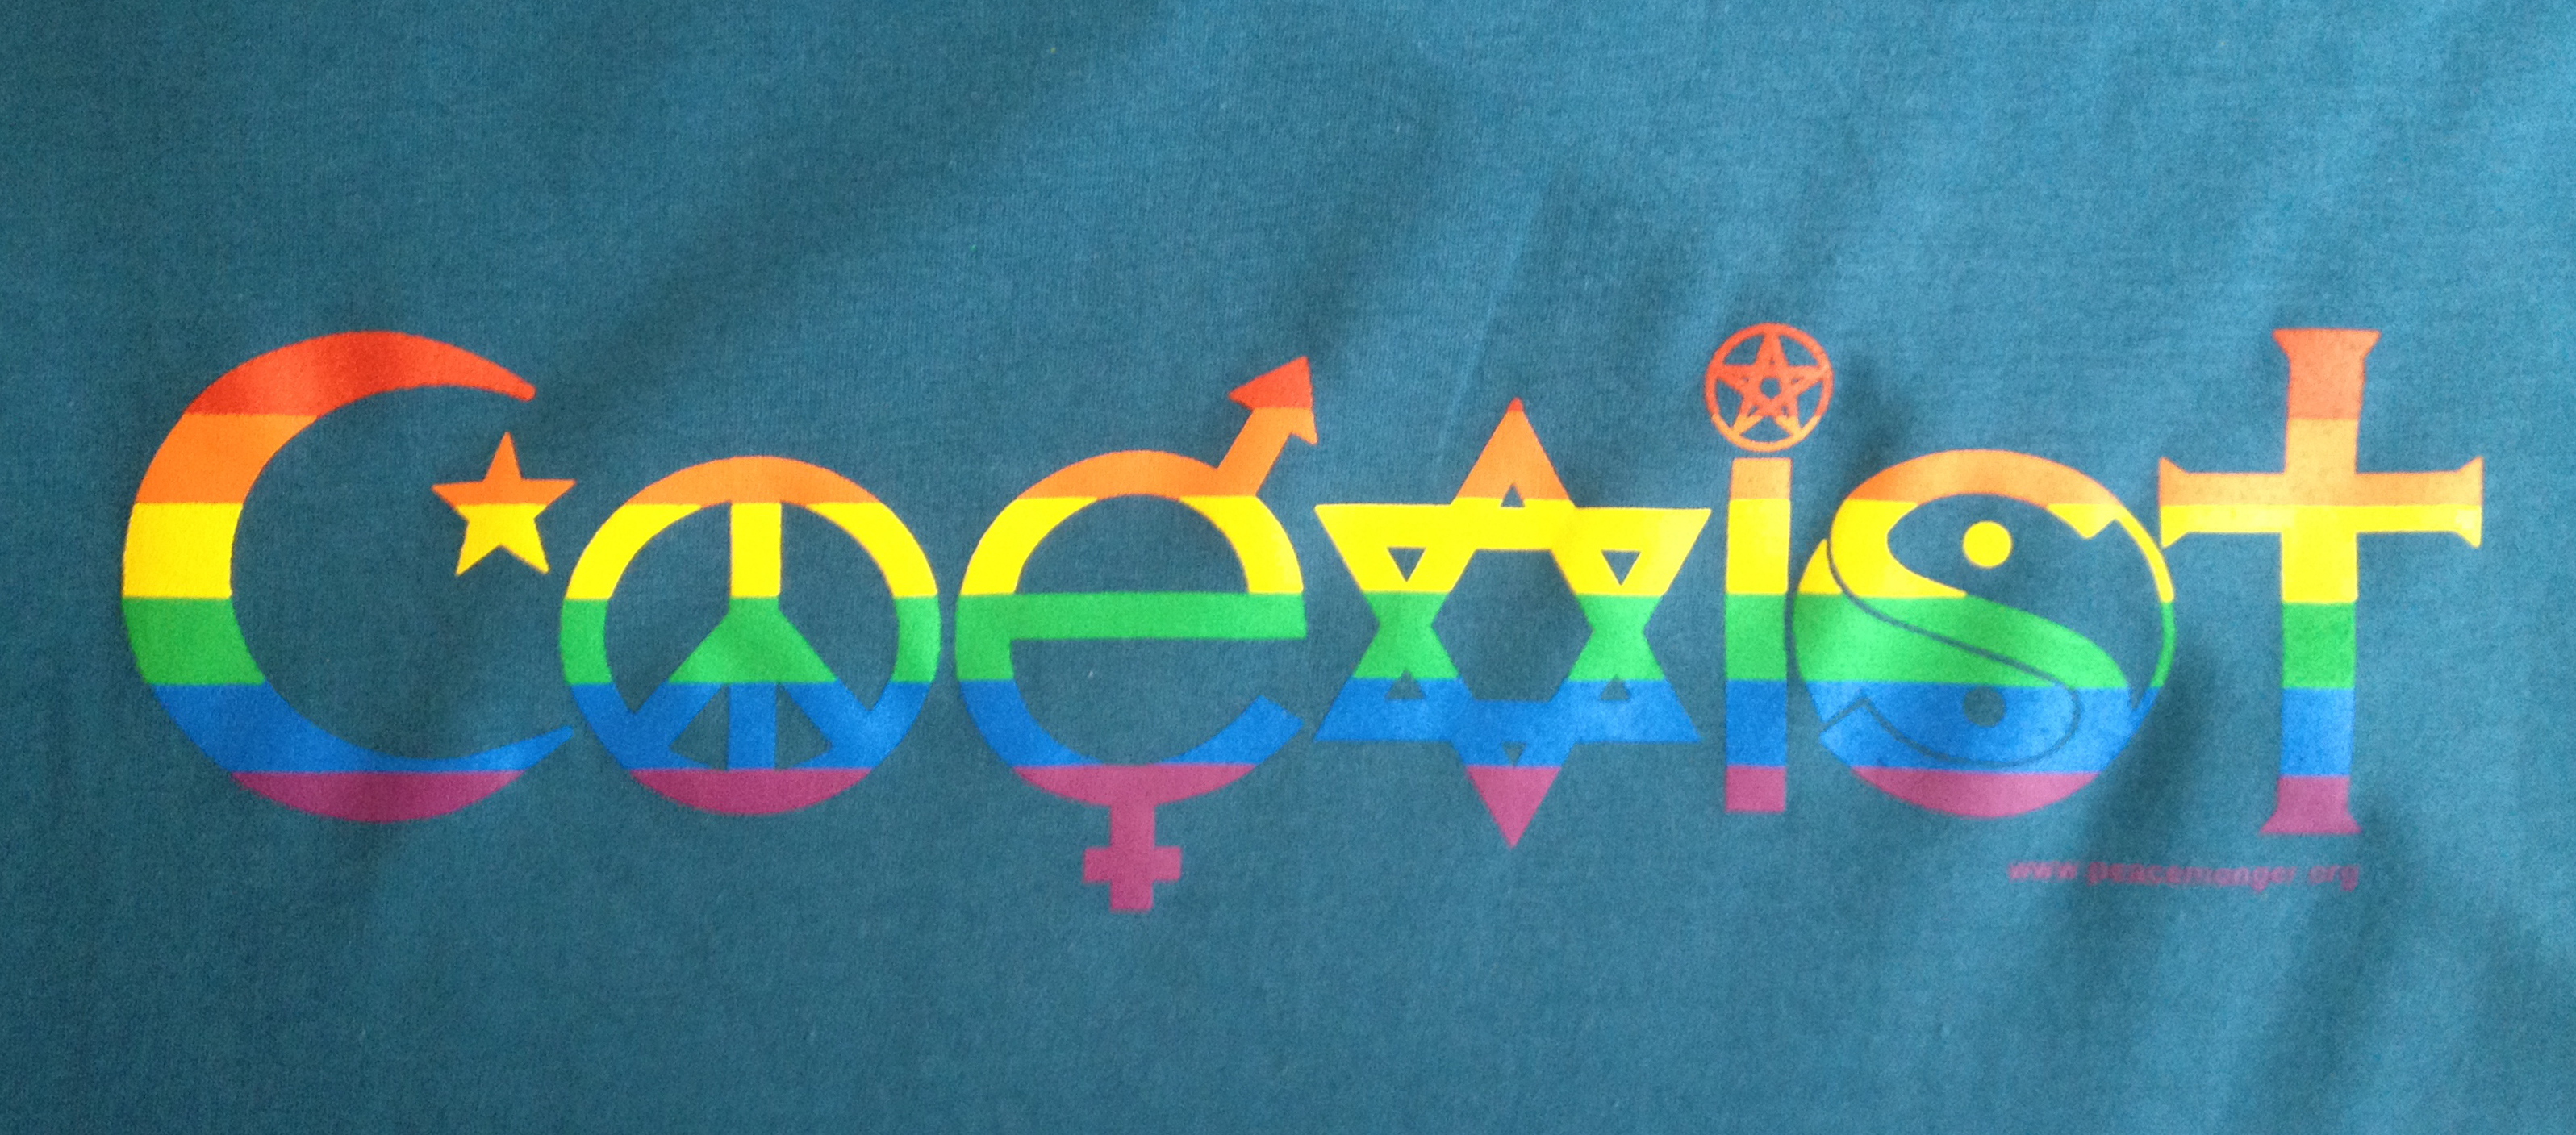 Coexist rainbow